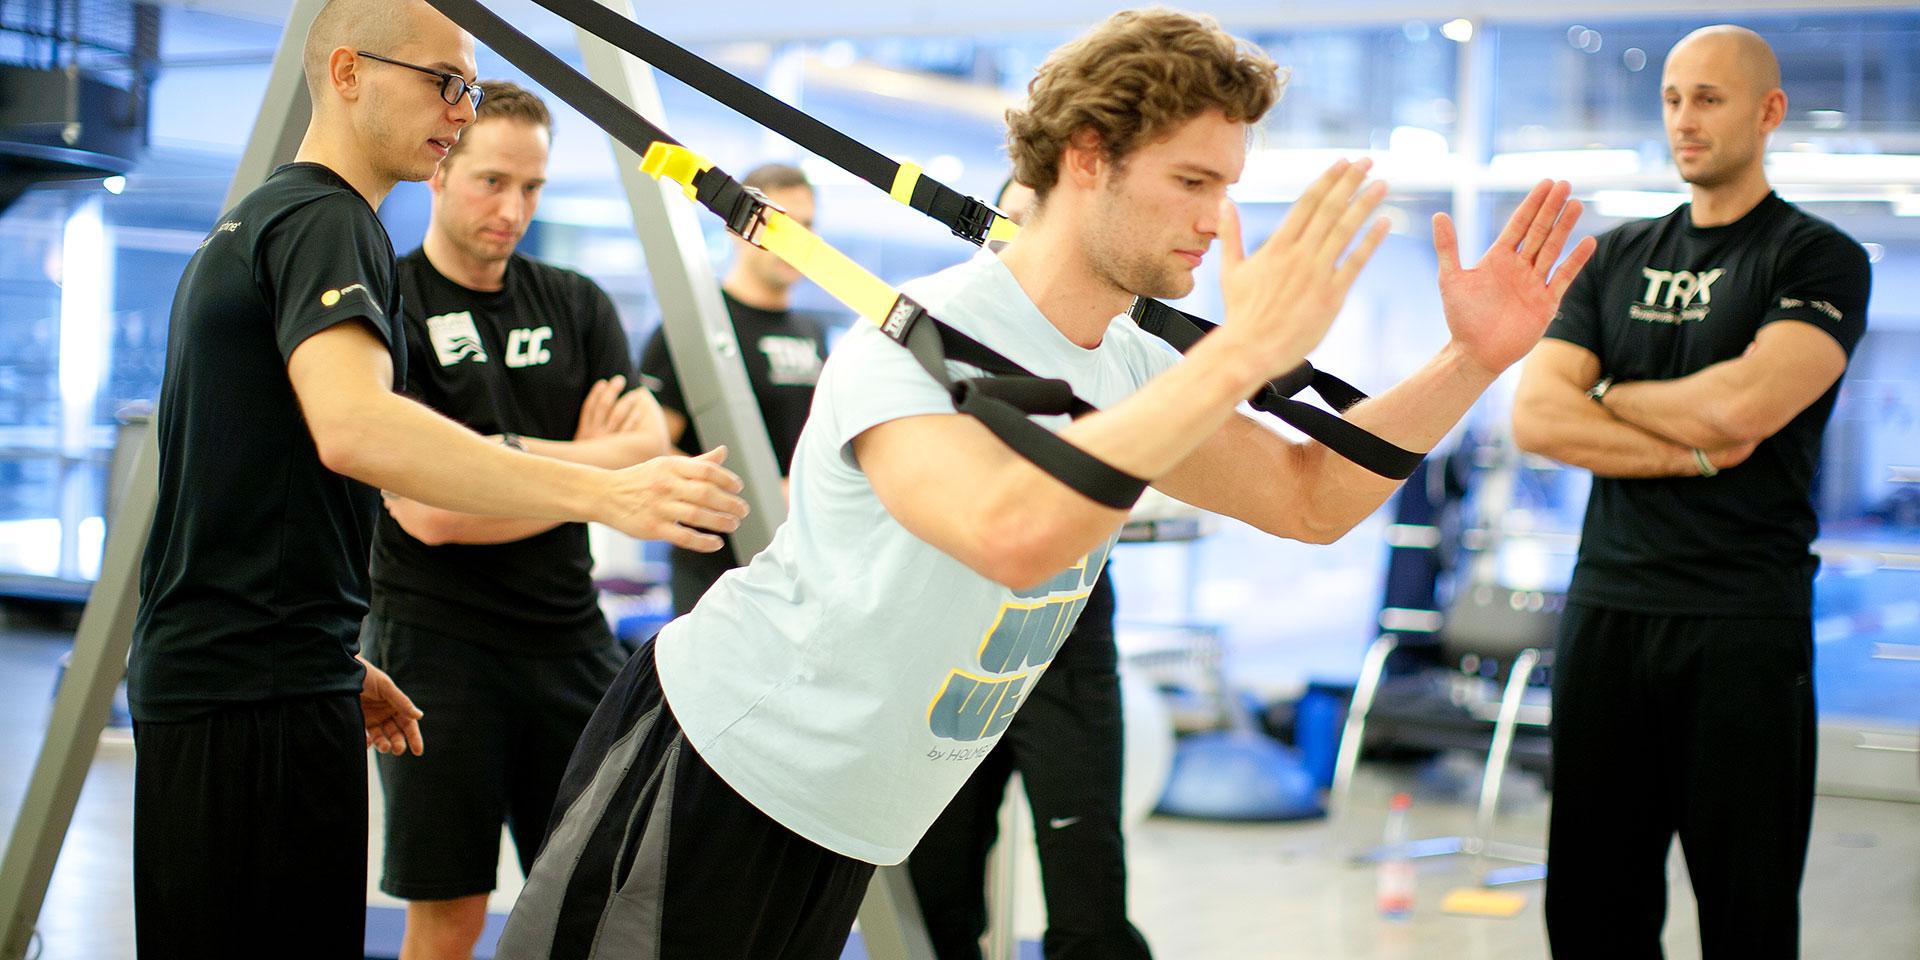 TRX SMSTC - Sports Medicine Suspension Training Course